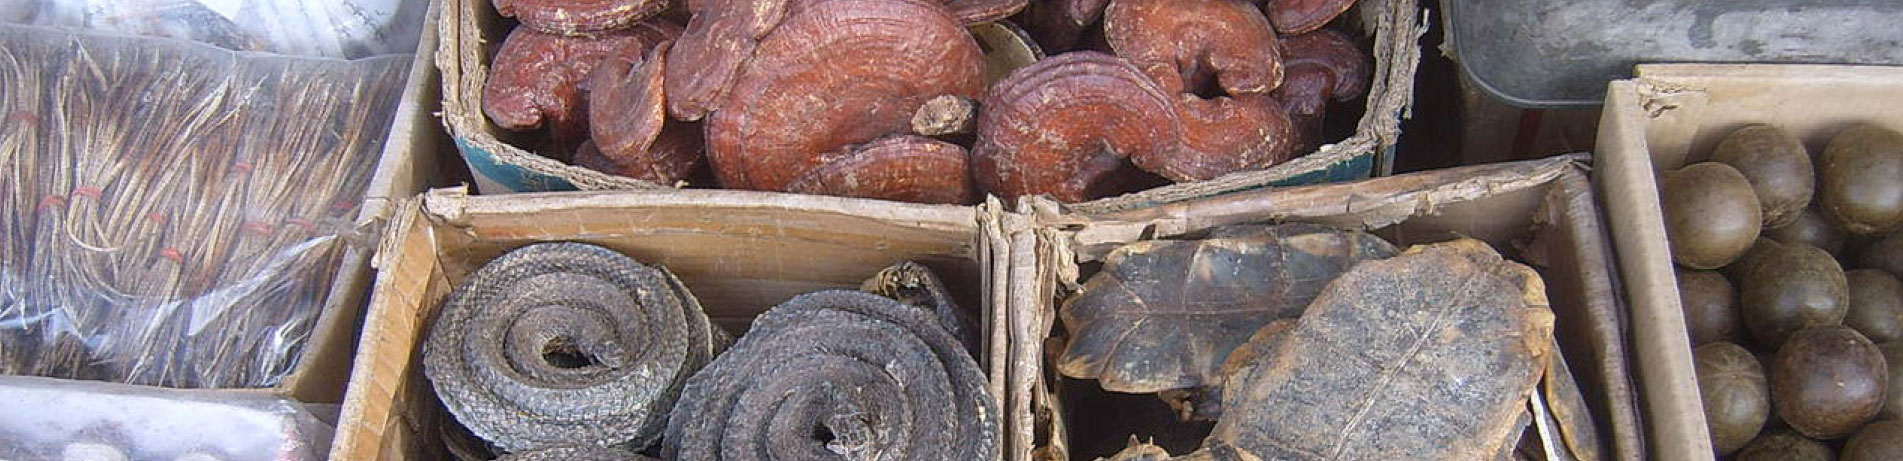 Dried plants and animals in boxes